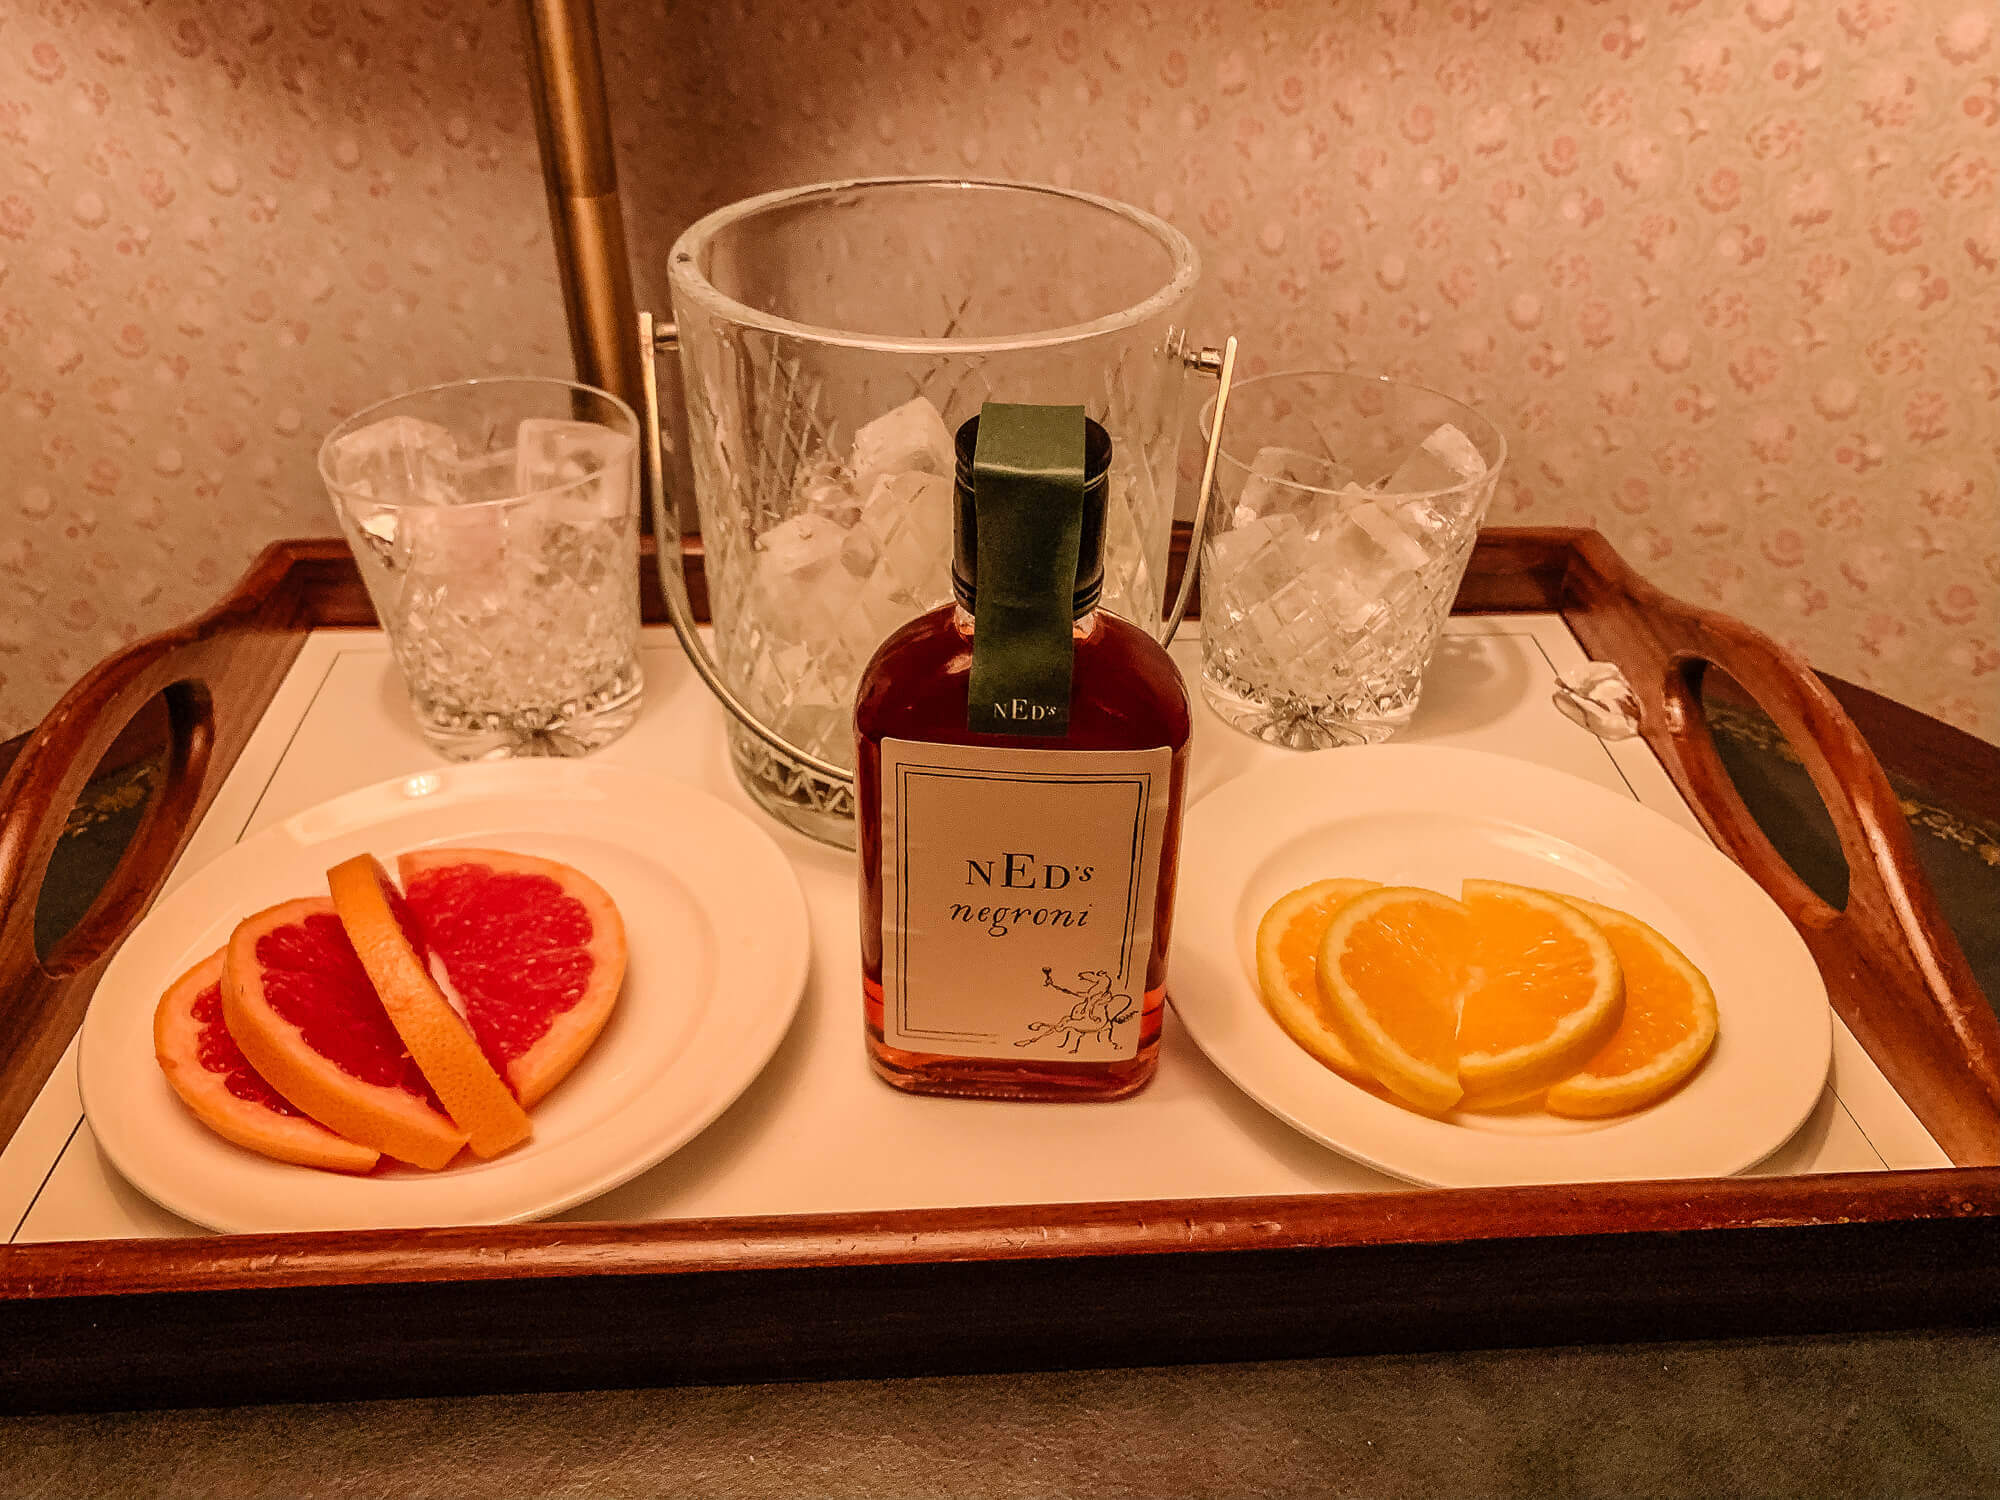 Mini bar Negronis The Ned